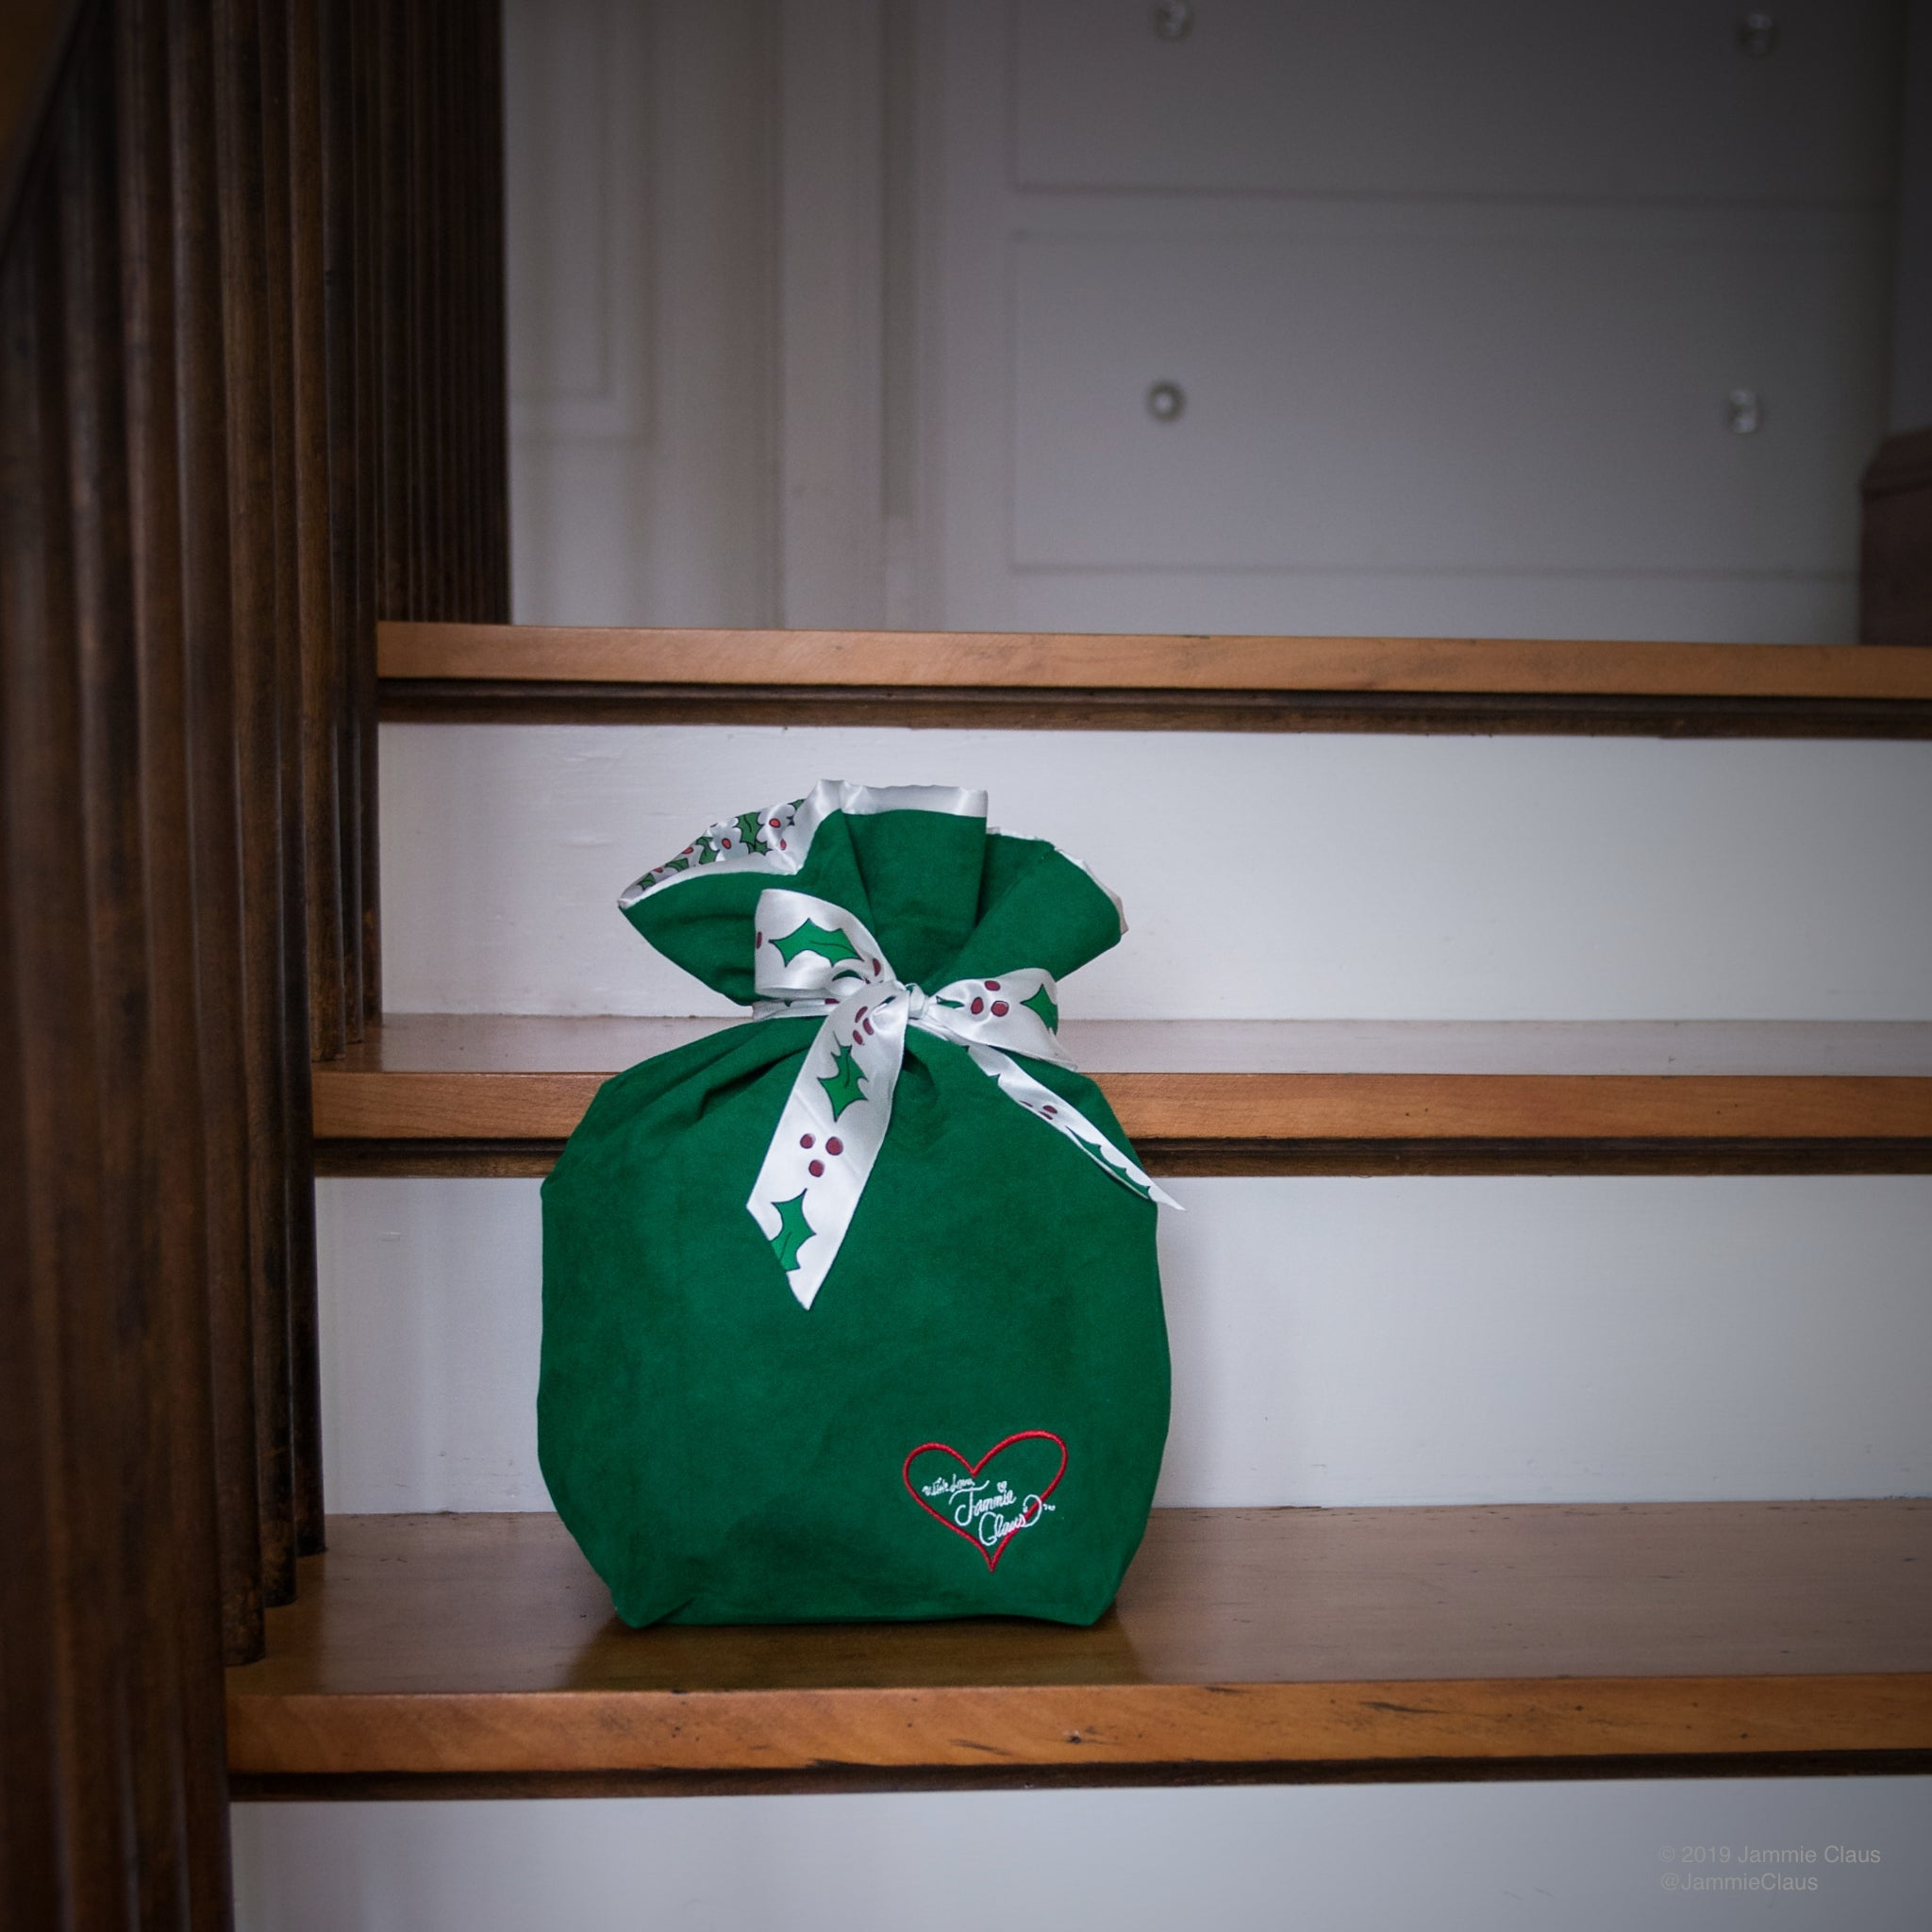 Jammie Claus Bag found on the steps